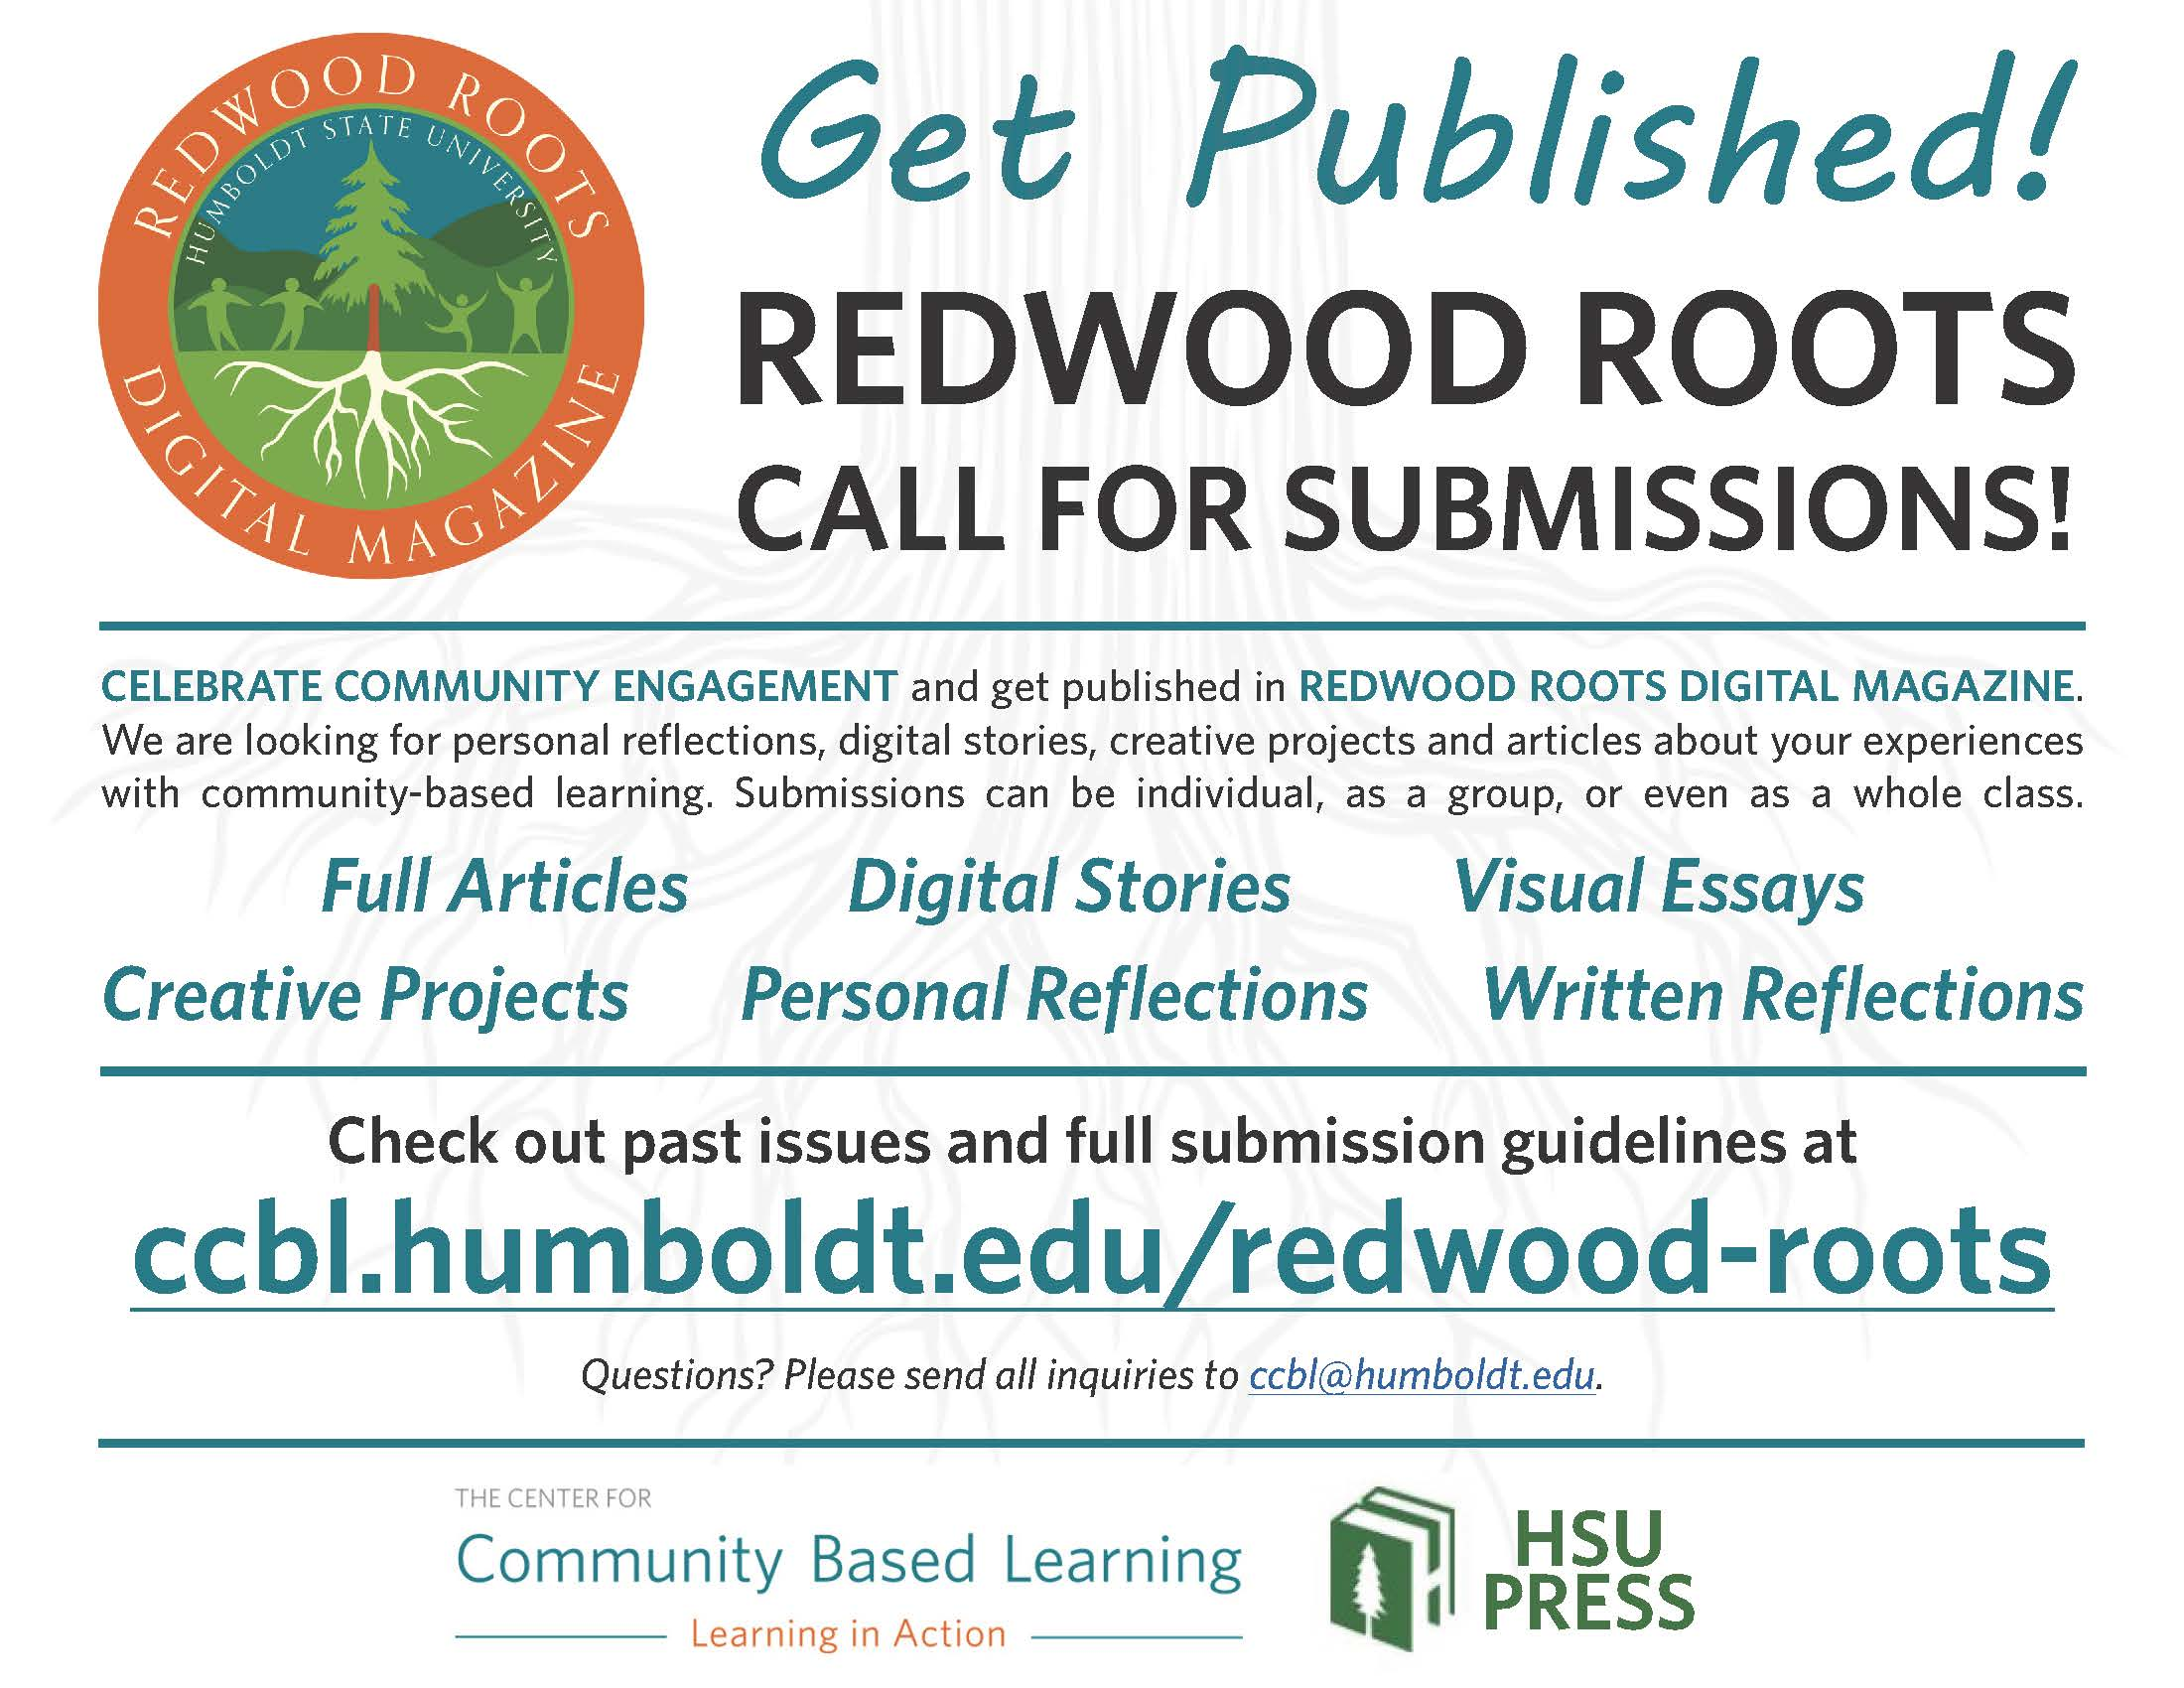 ccbl.humbold.edu/redwood-roots for magazine submission information